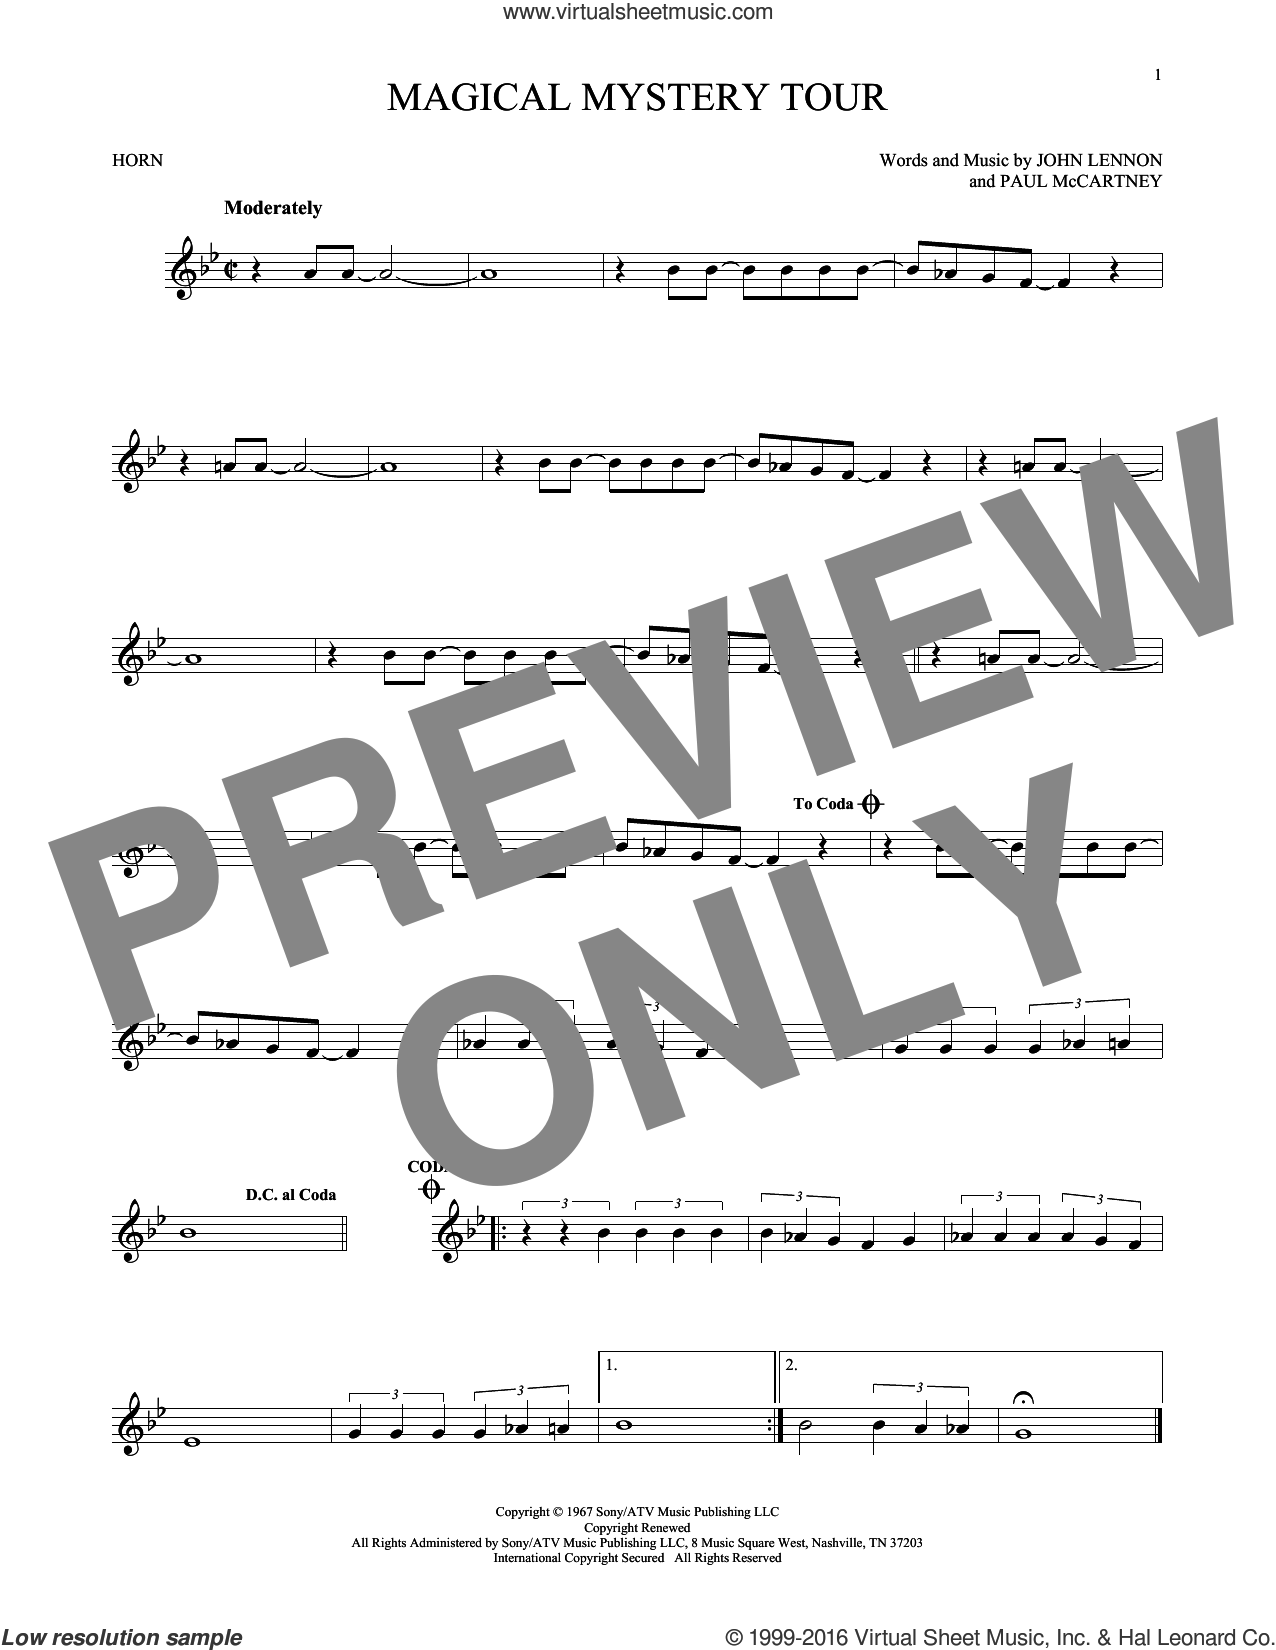 Magical Mystery Tour sheet music for horn solo by Paul McCartney